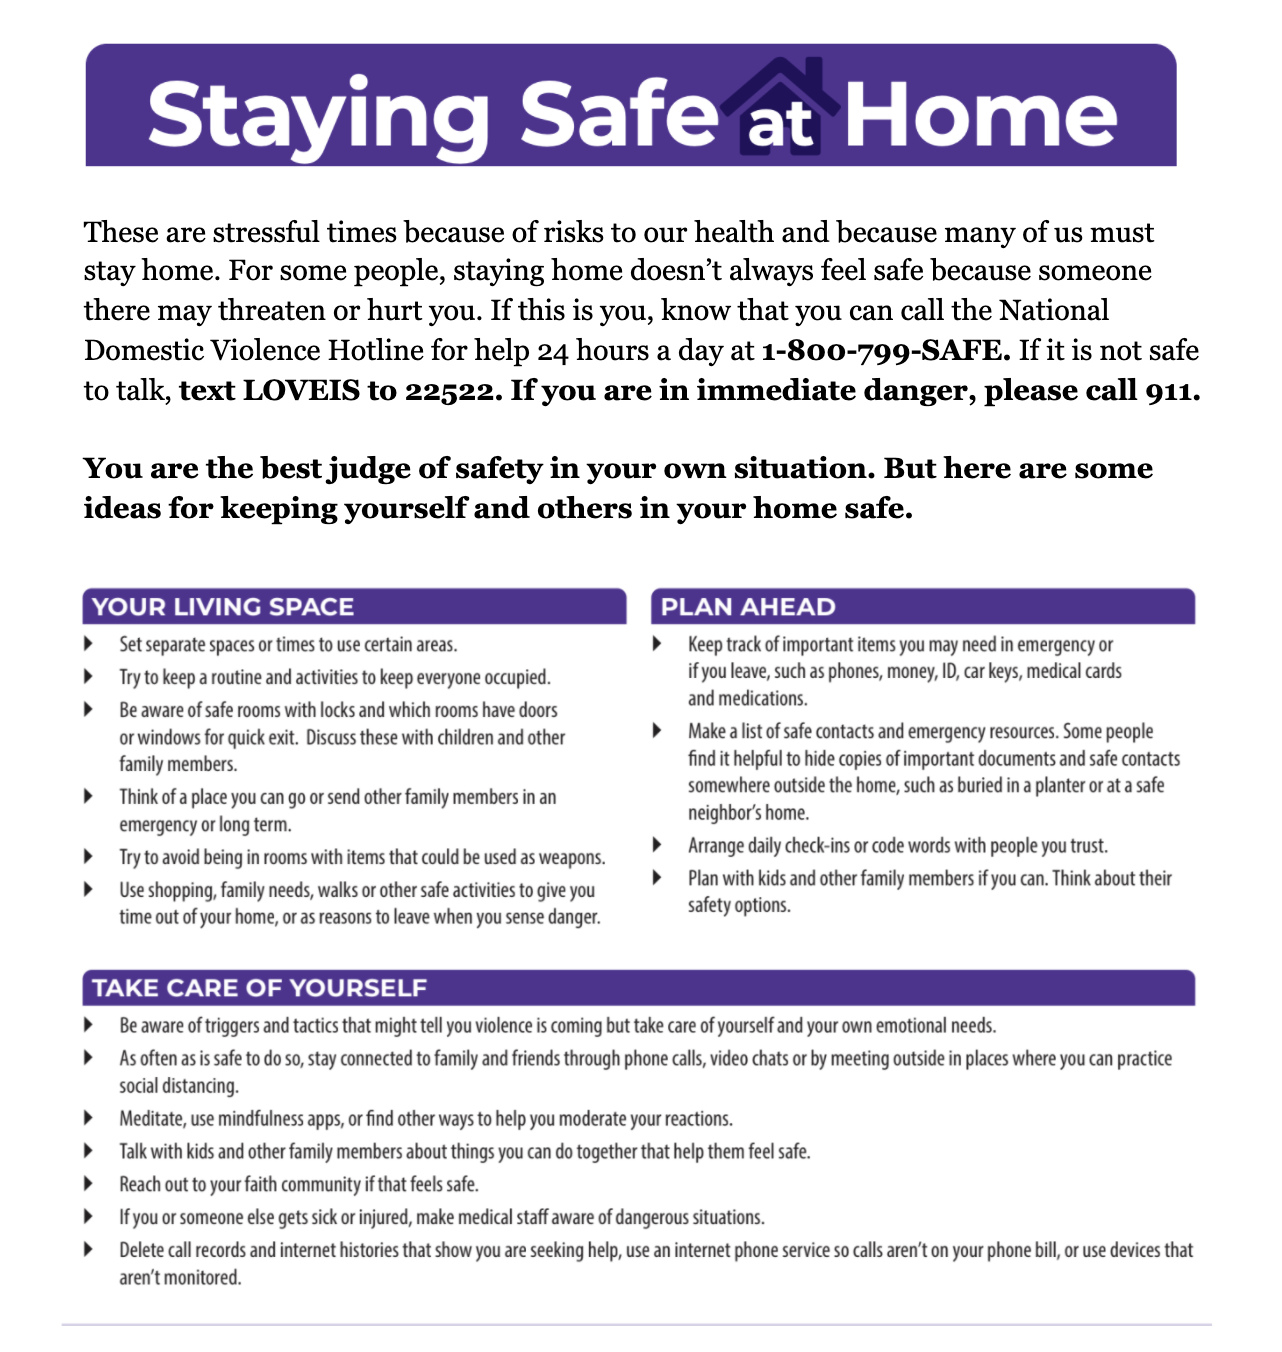 The English language version of the Staying Safe at Home